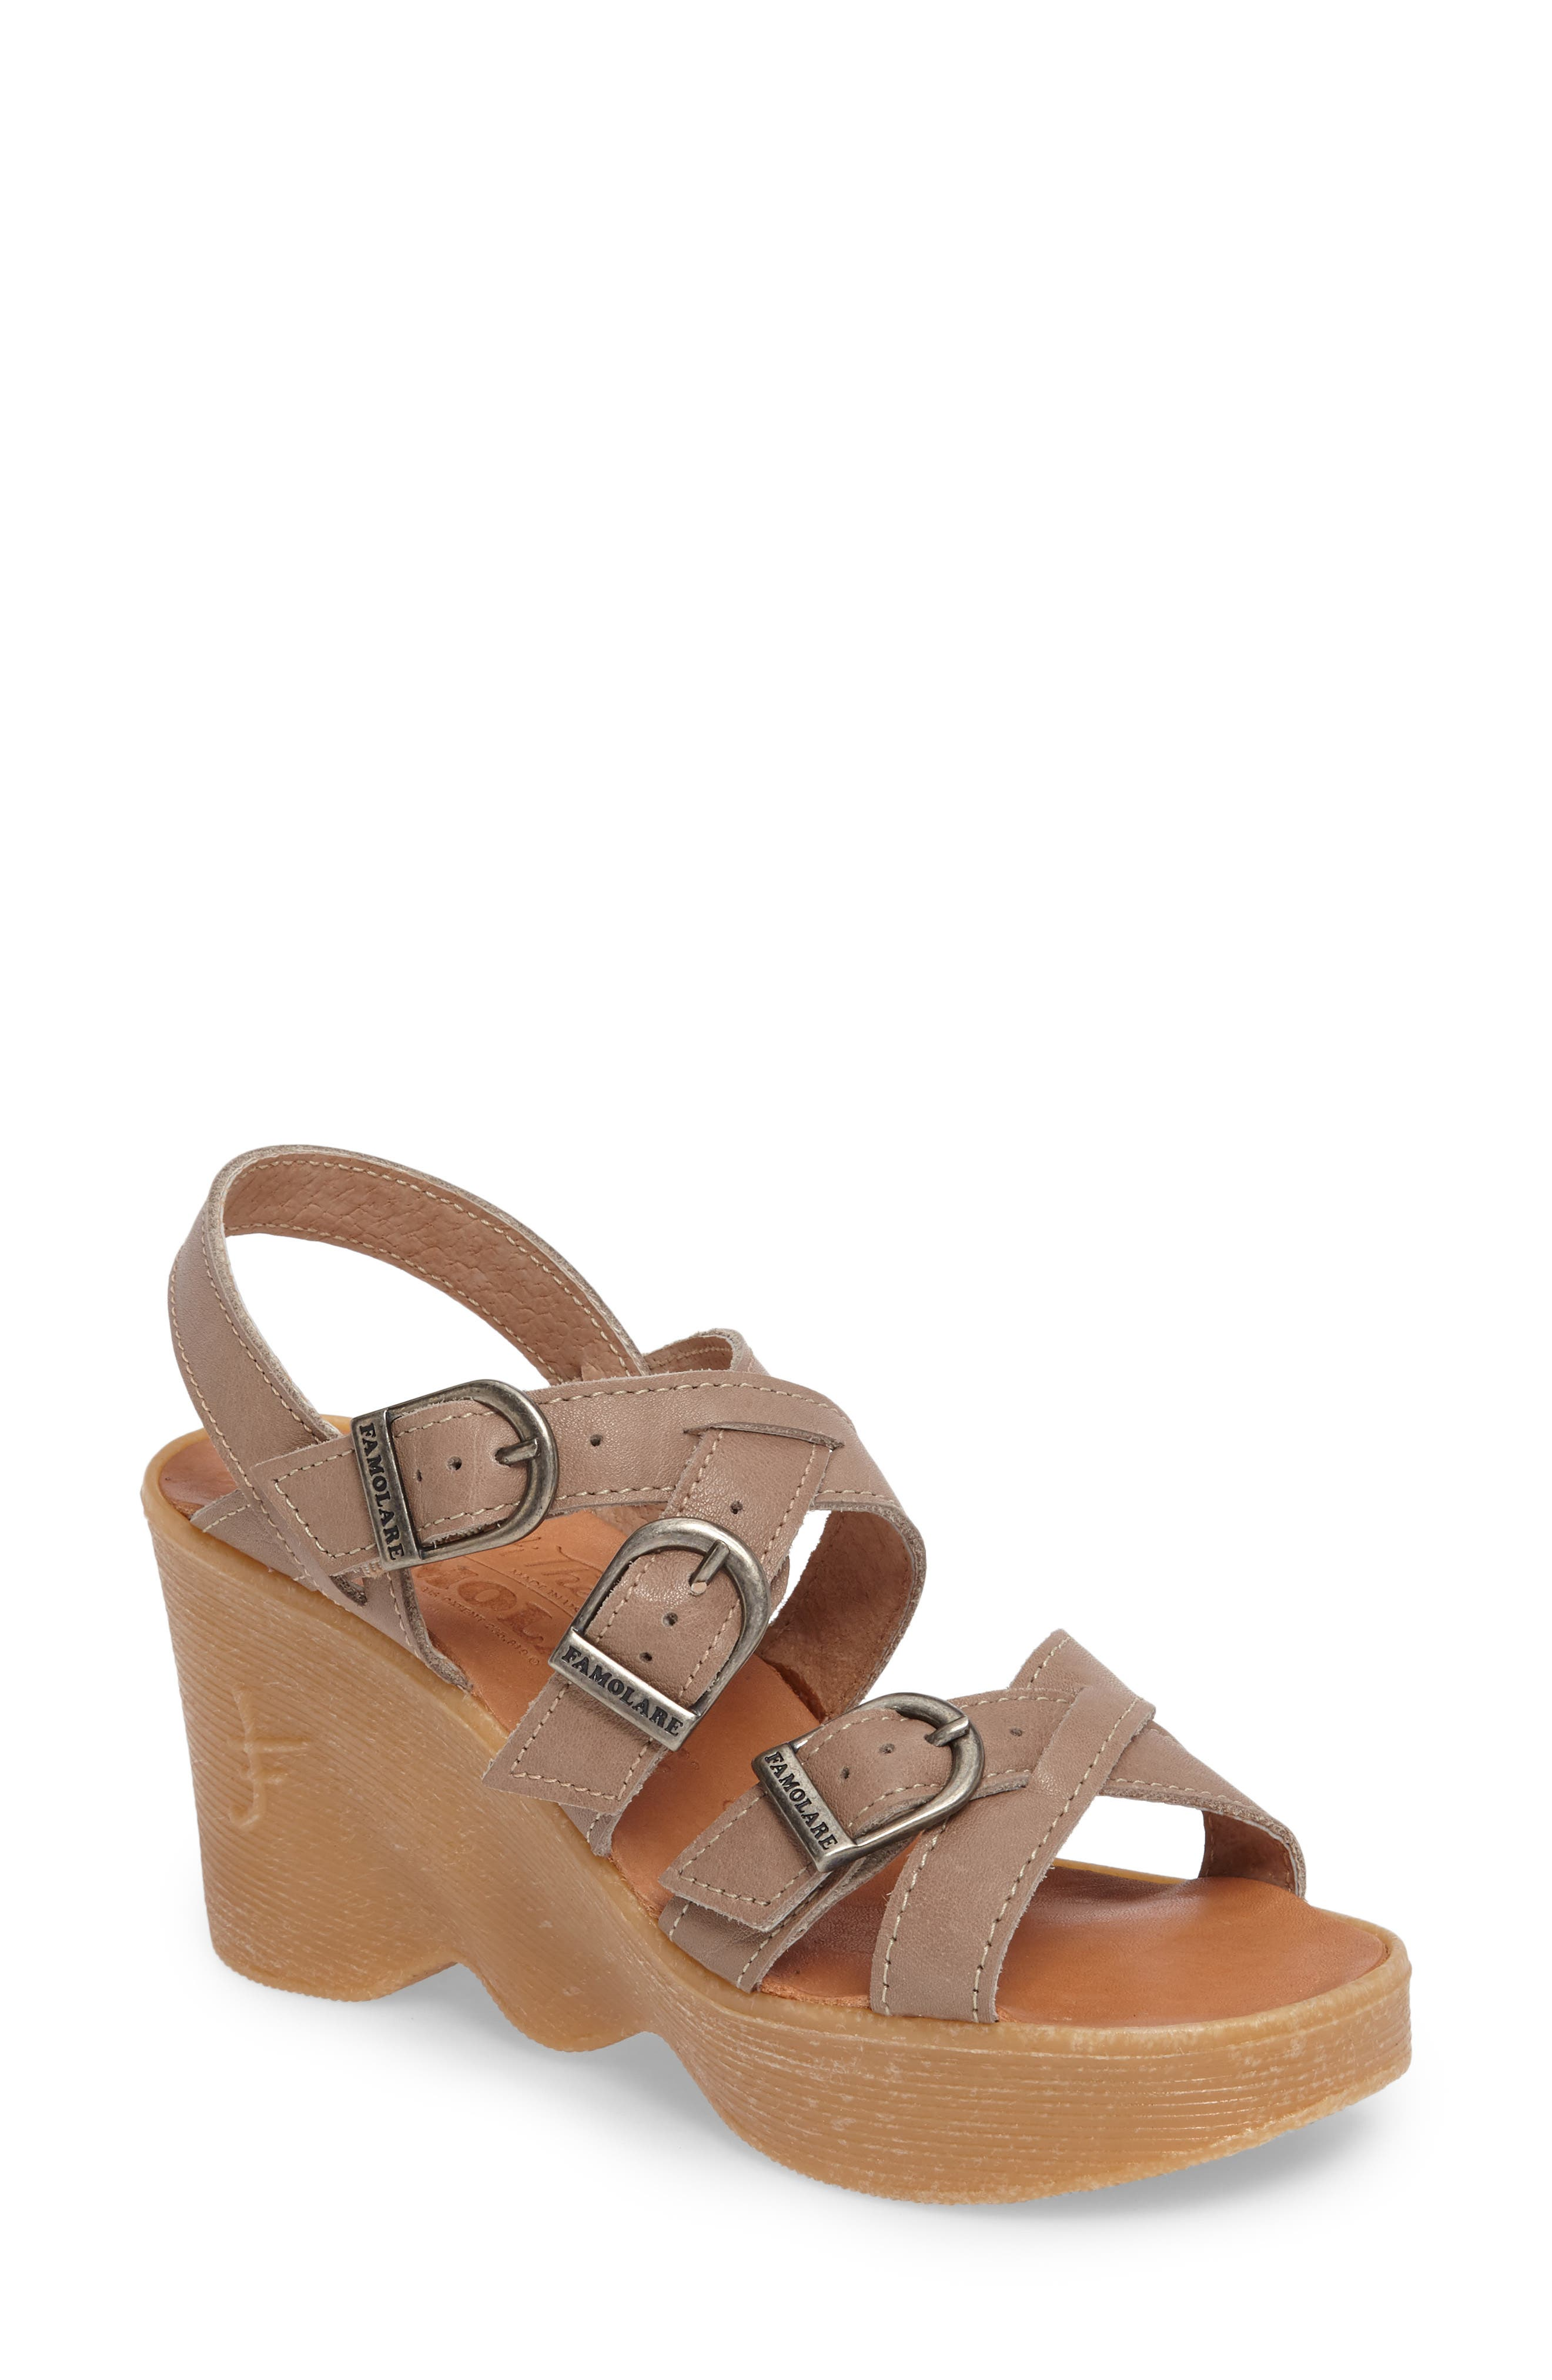 Buckle Up Wedge Sandal,                             Main thumbnail 1, color,                             SAND LEATHER